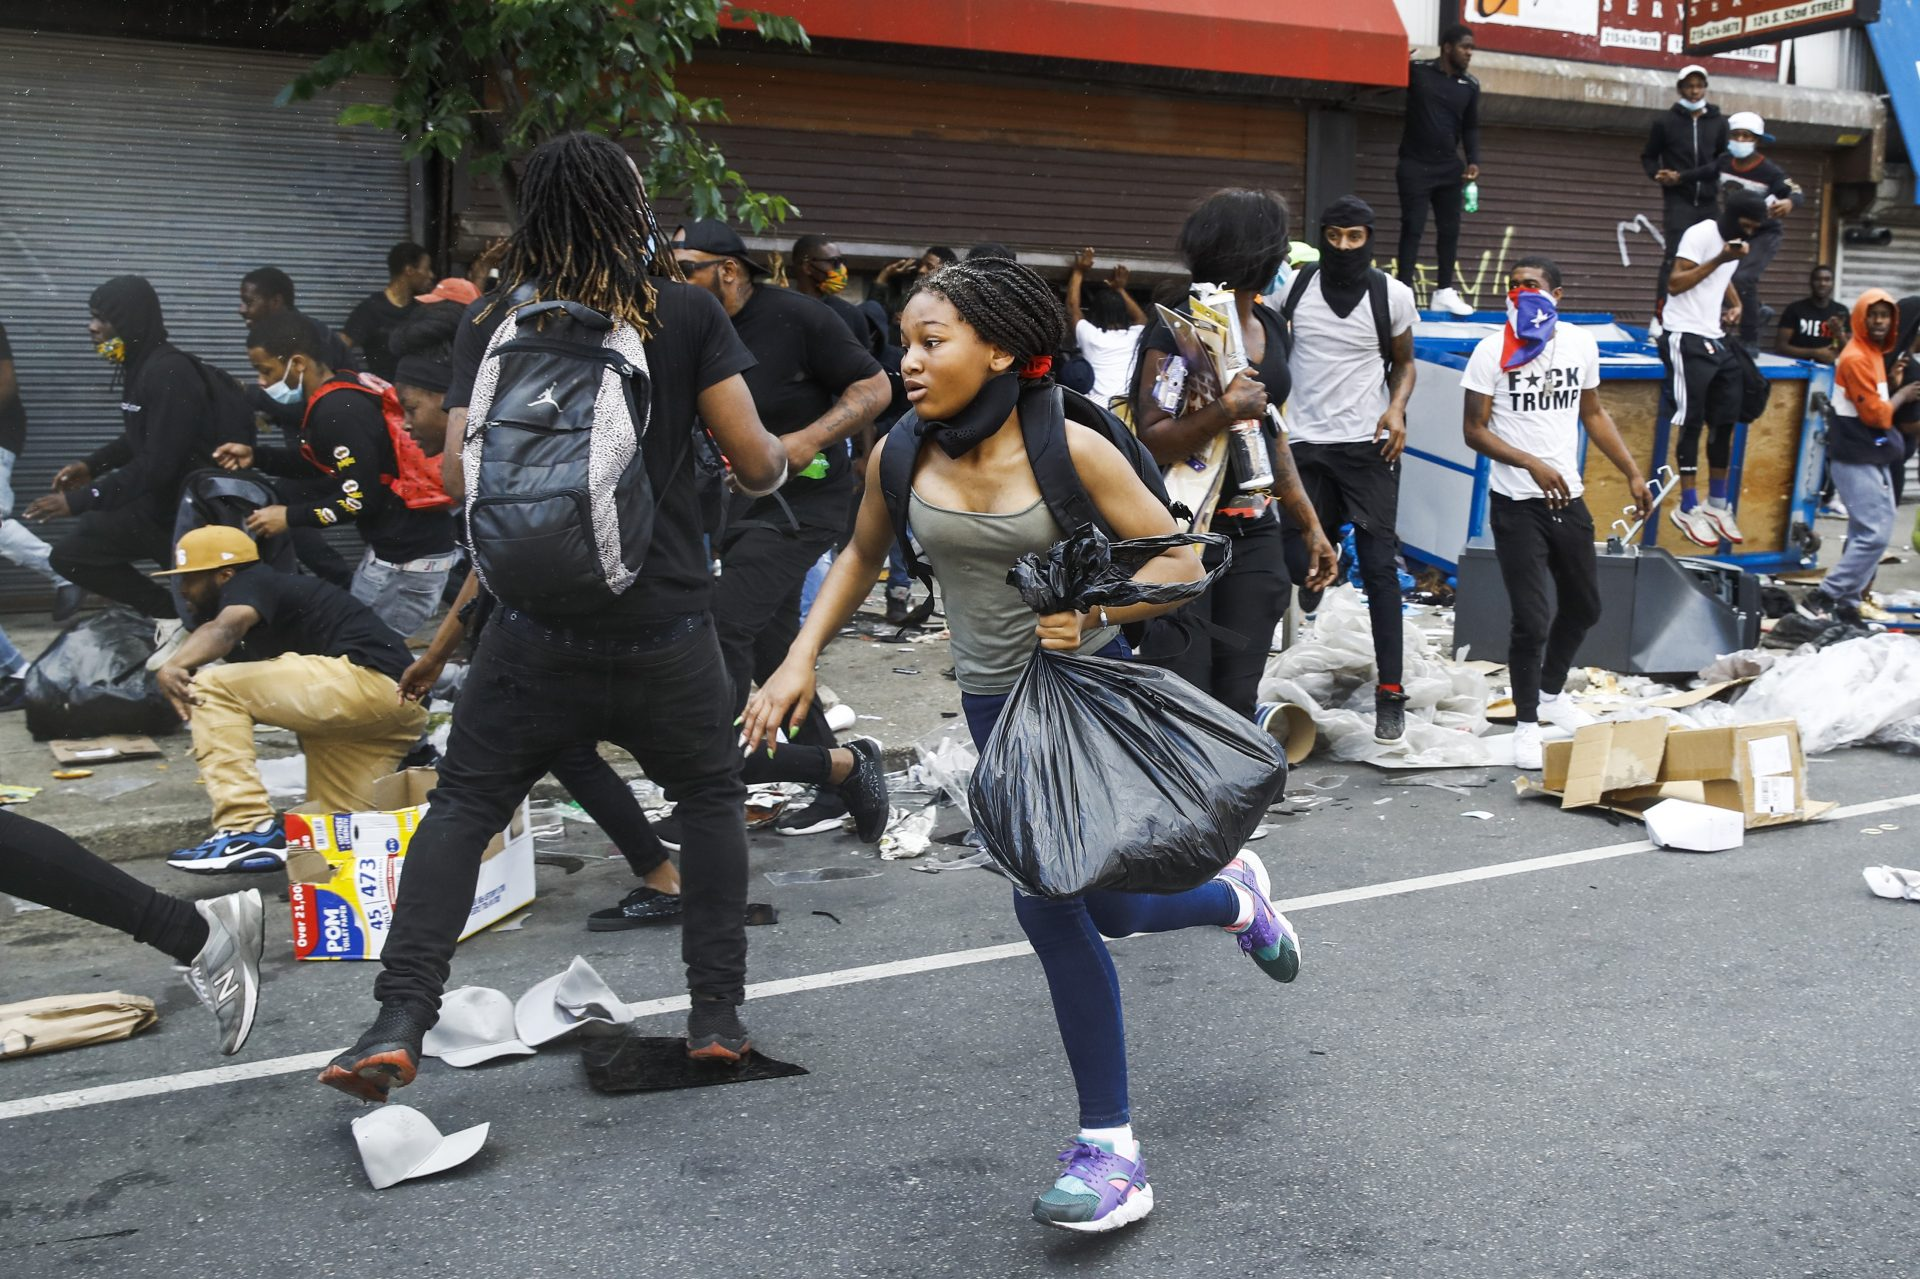 People run from the area as police officers approach stores that were broken into as protests continue on Sunday, May 31, 2020, in Philadelphia. Protests were held throughout the country over the death of Floyd, a black man who died after being restrained by Minneapolis police officers on May 25.